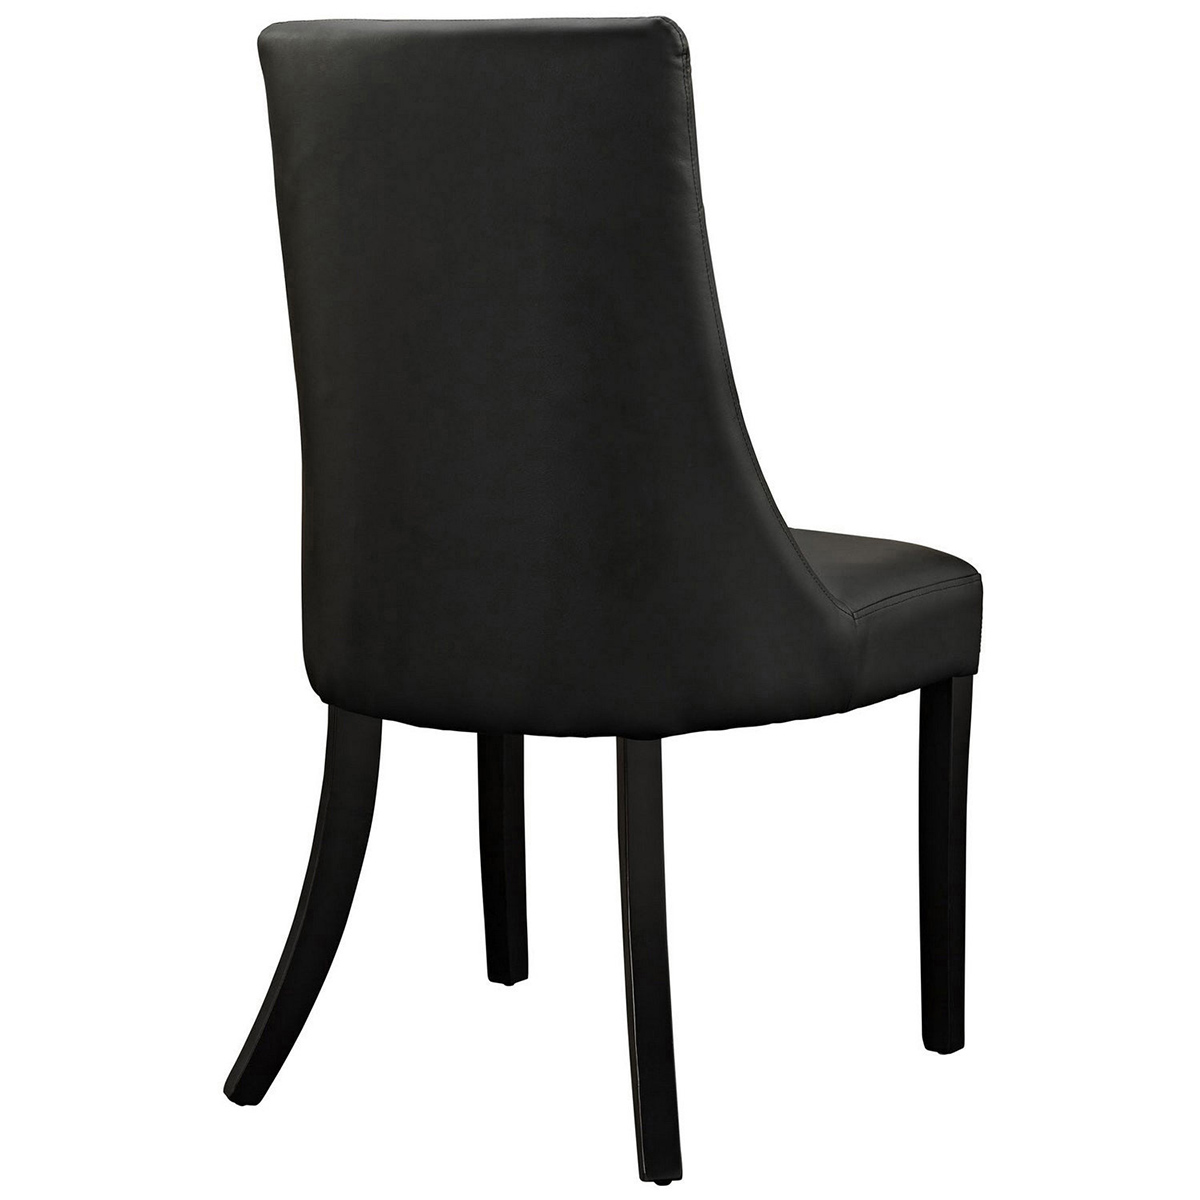 Modway Noblesse Vinyl Dining Chair Set of 4 - Black